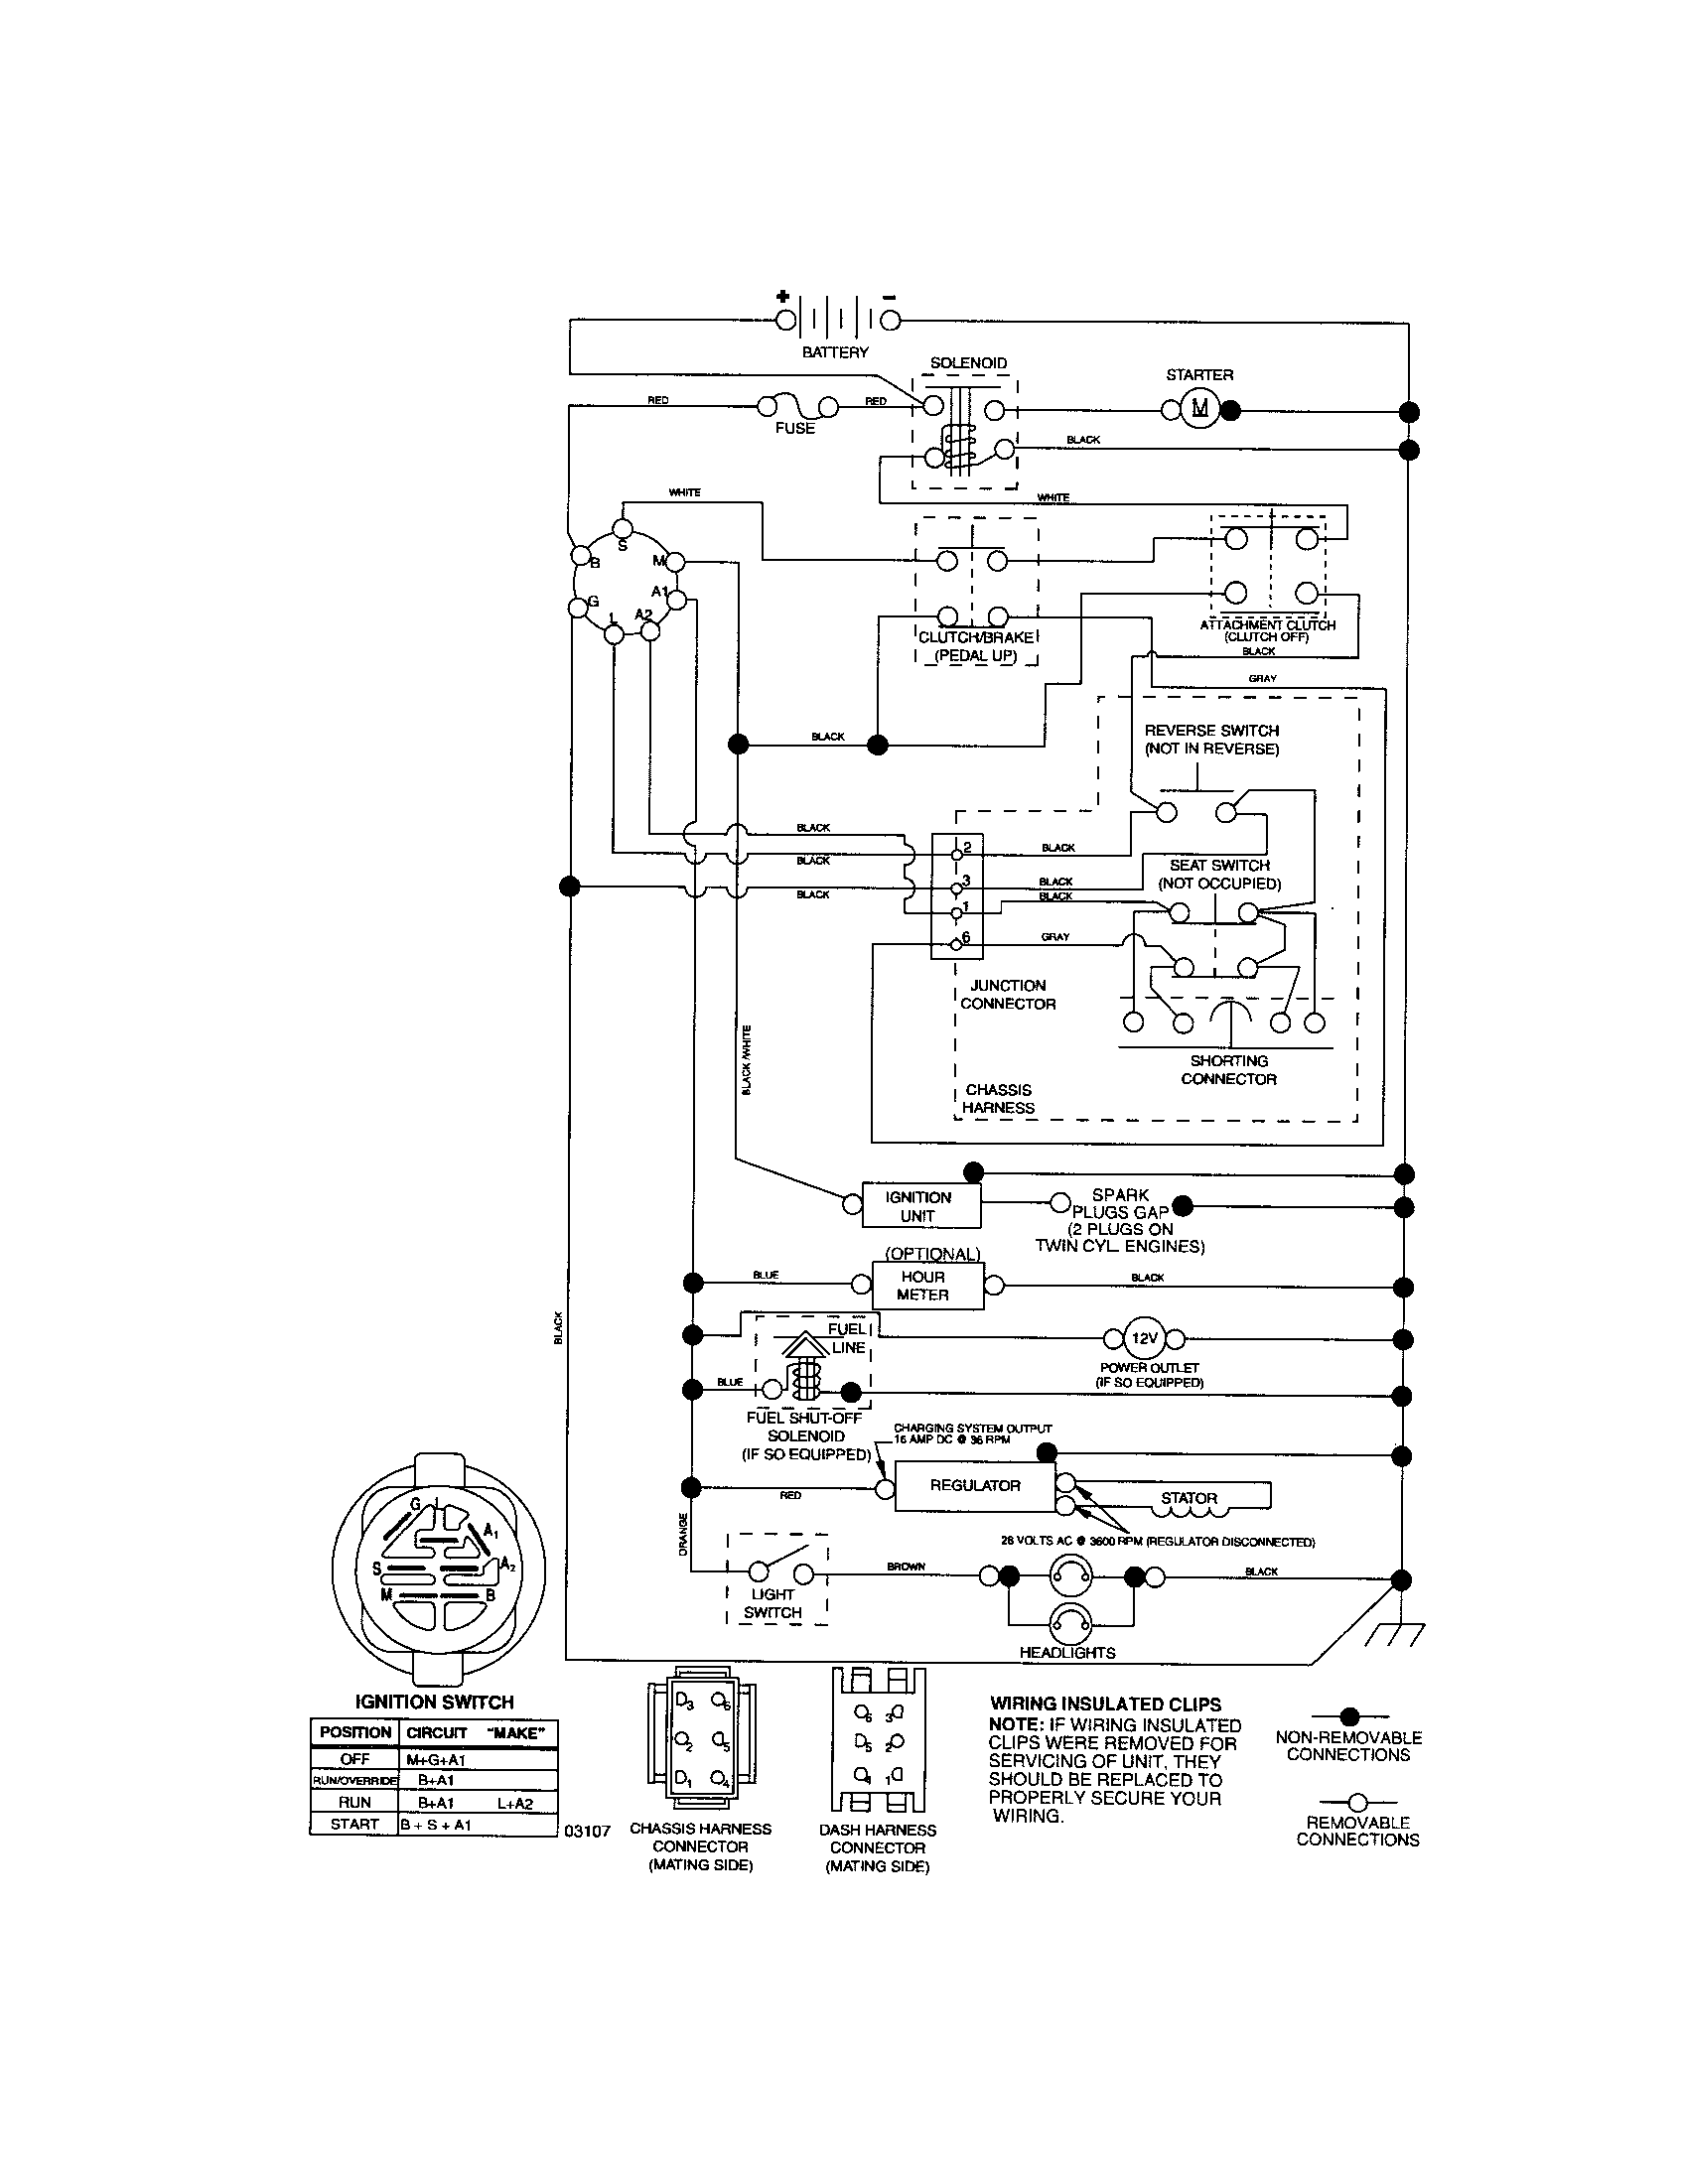 Malibu Starter Wiring Diagram On Cadillac Sts 2005 Battery Location